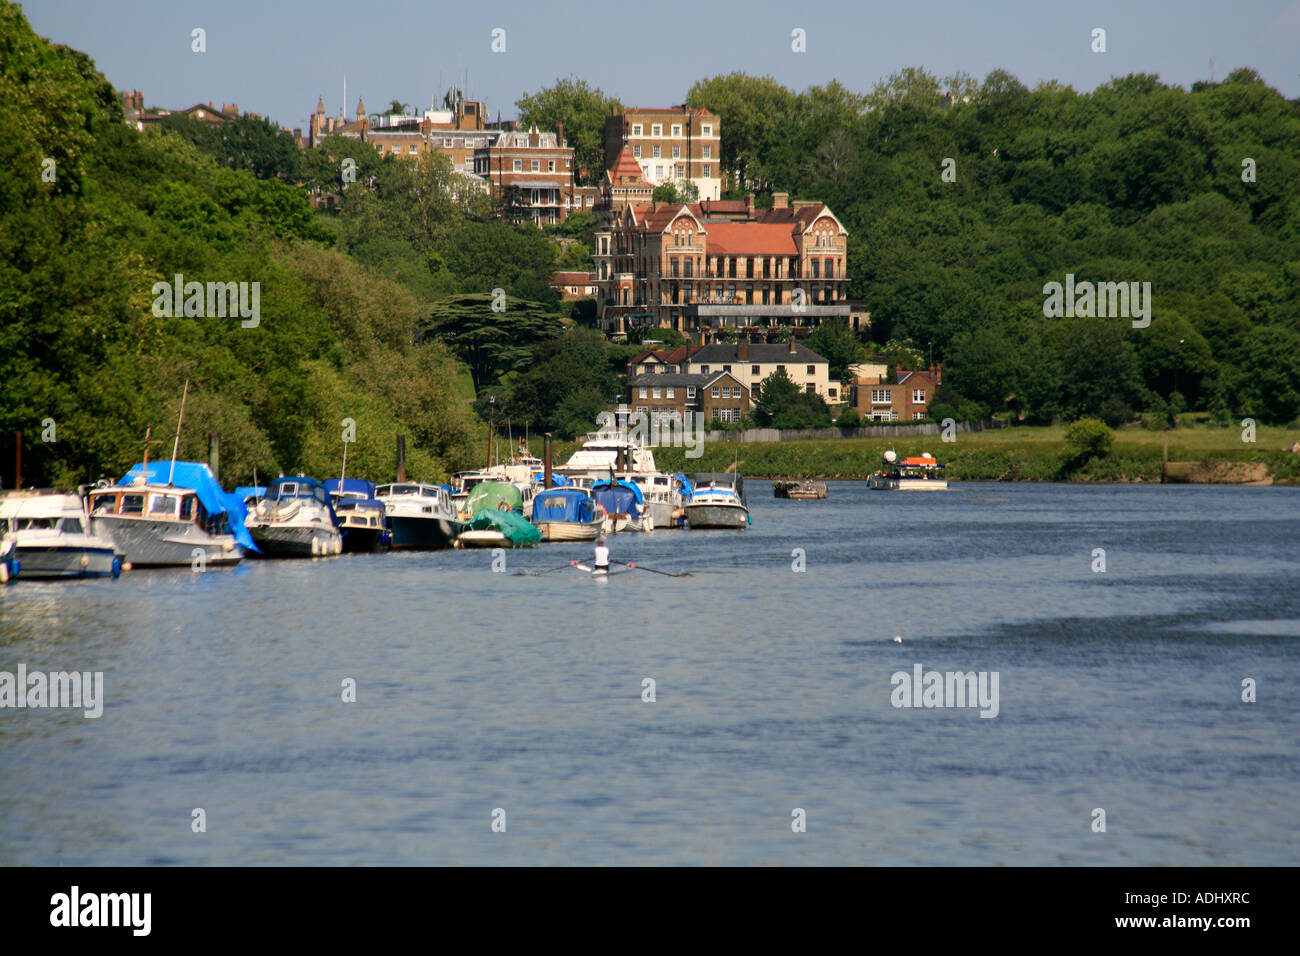 River Thames at Richmond London with Petersham Hotel overlooking the  view. - Stock Image